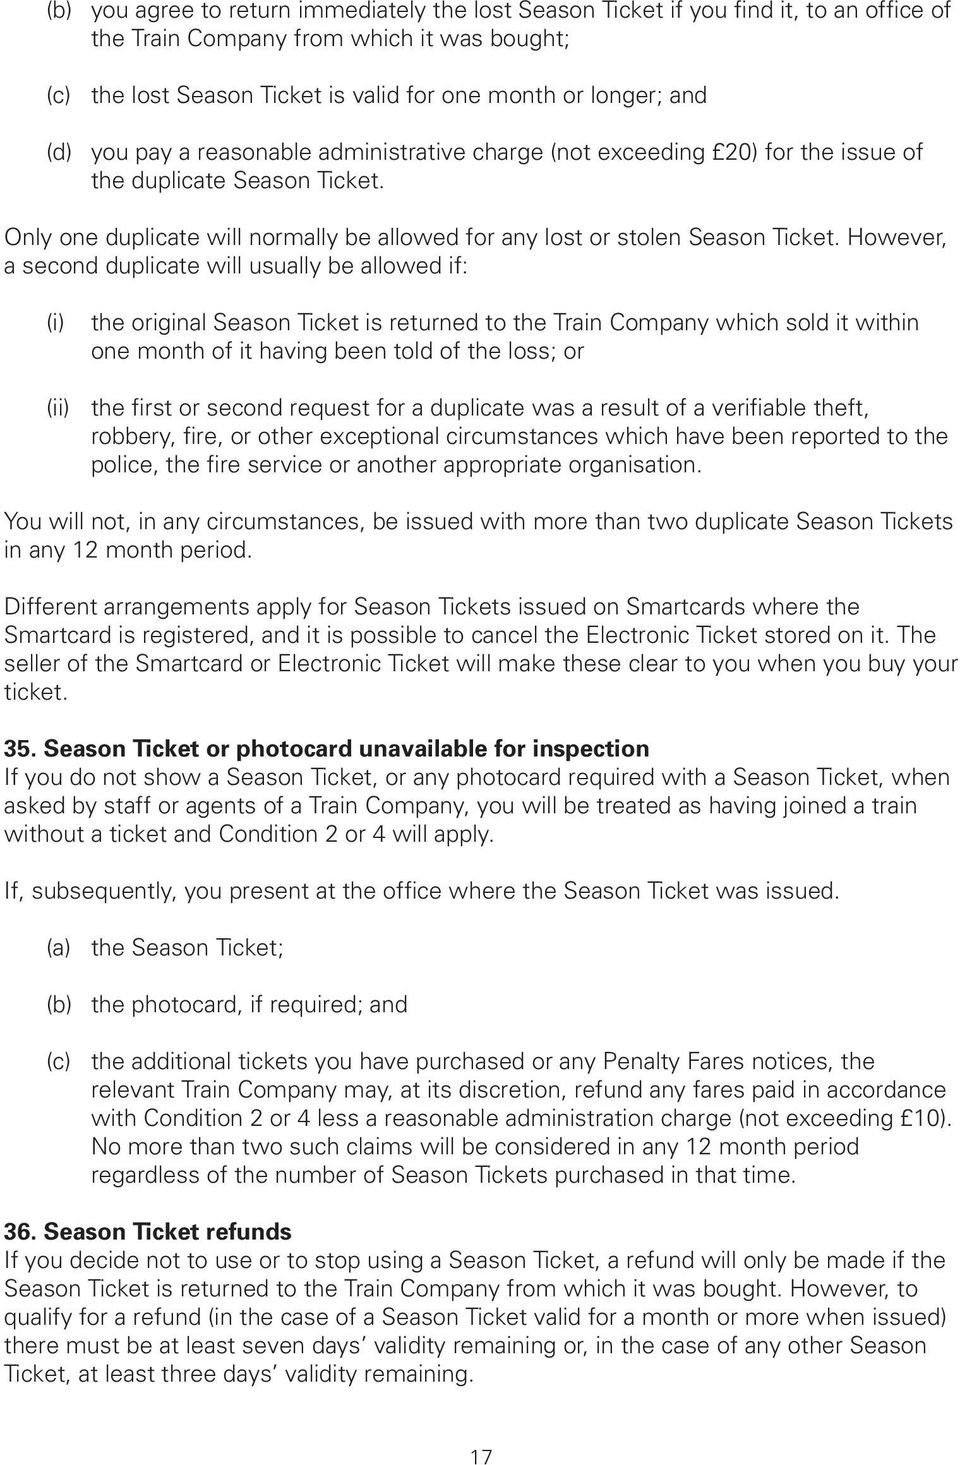 However, a second duplicate will usually be allowed if: (i) the original Season Ticket is returned to the Train Company which sold it within one month of it having been told of the loss; or (ii) the